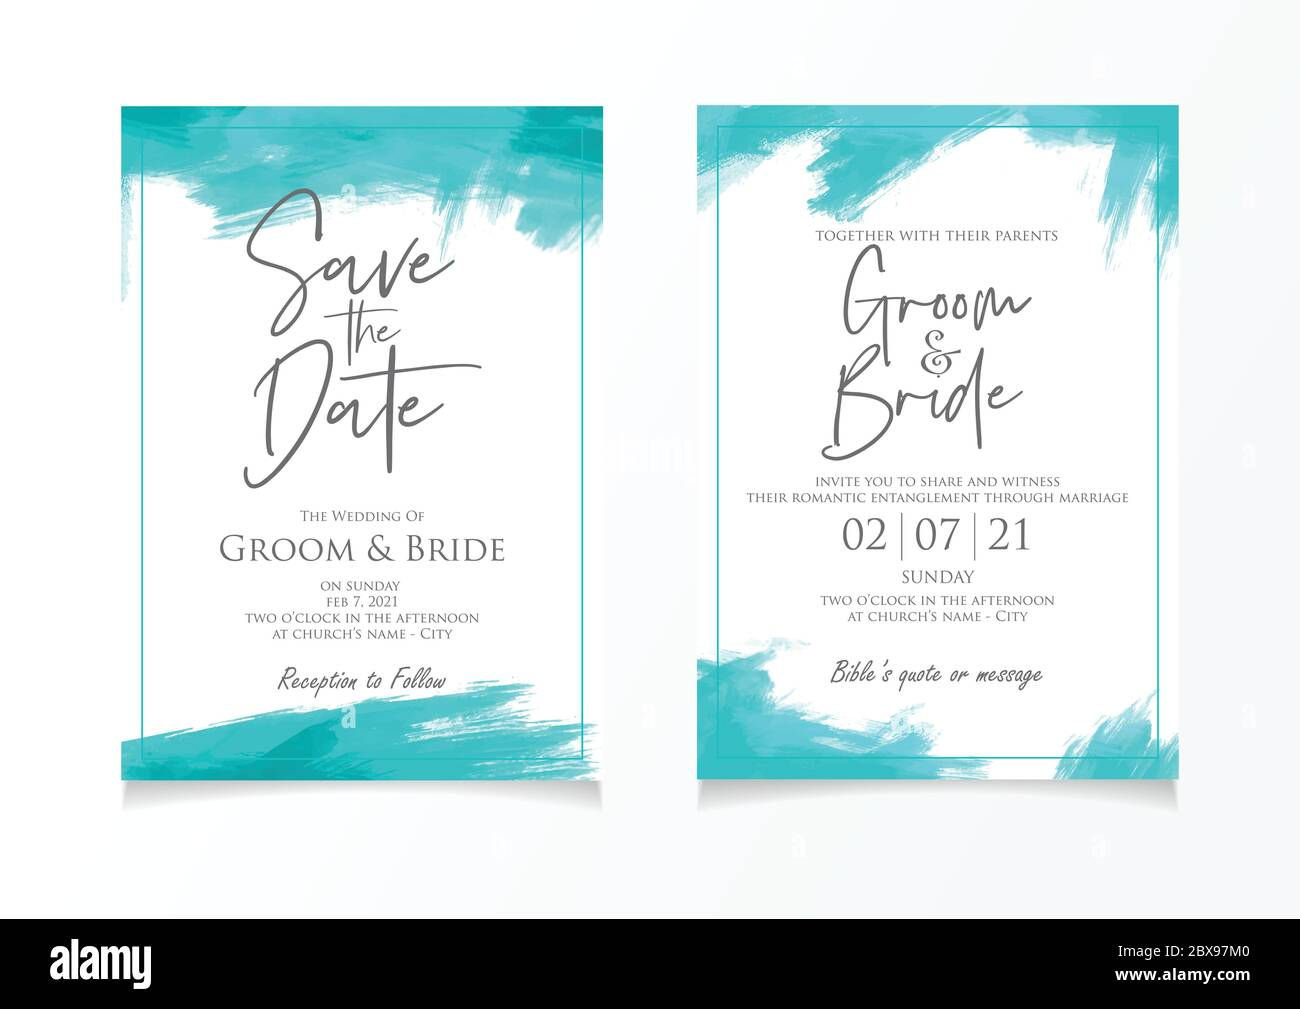 Wedding invitation card template with paint brush style background Pertaining To Church Invite Cards Template